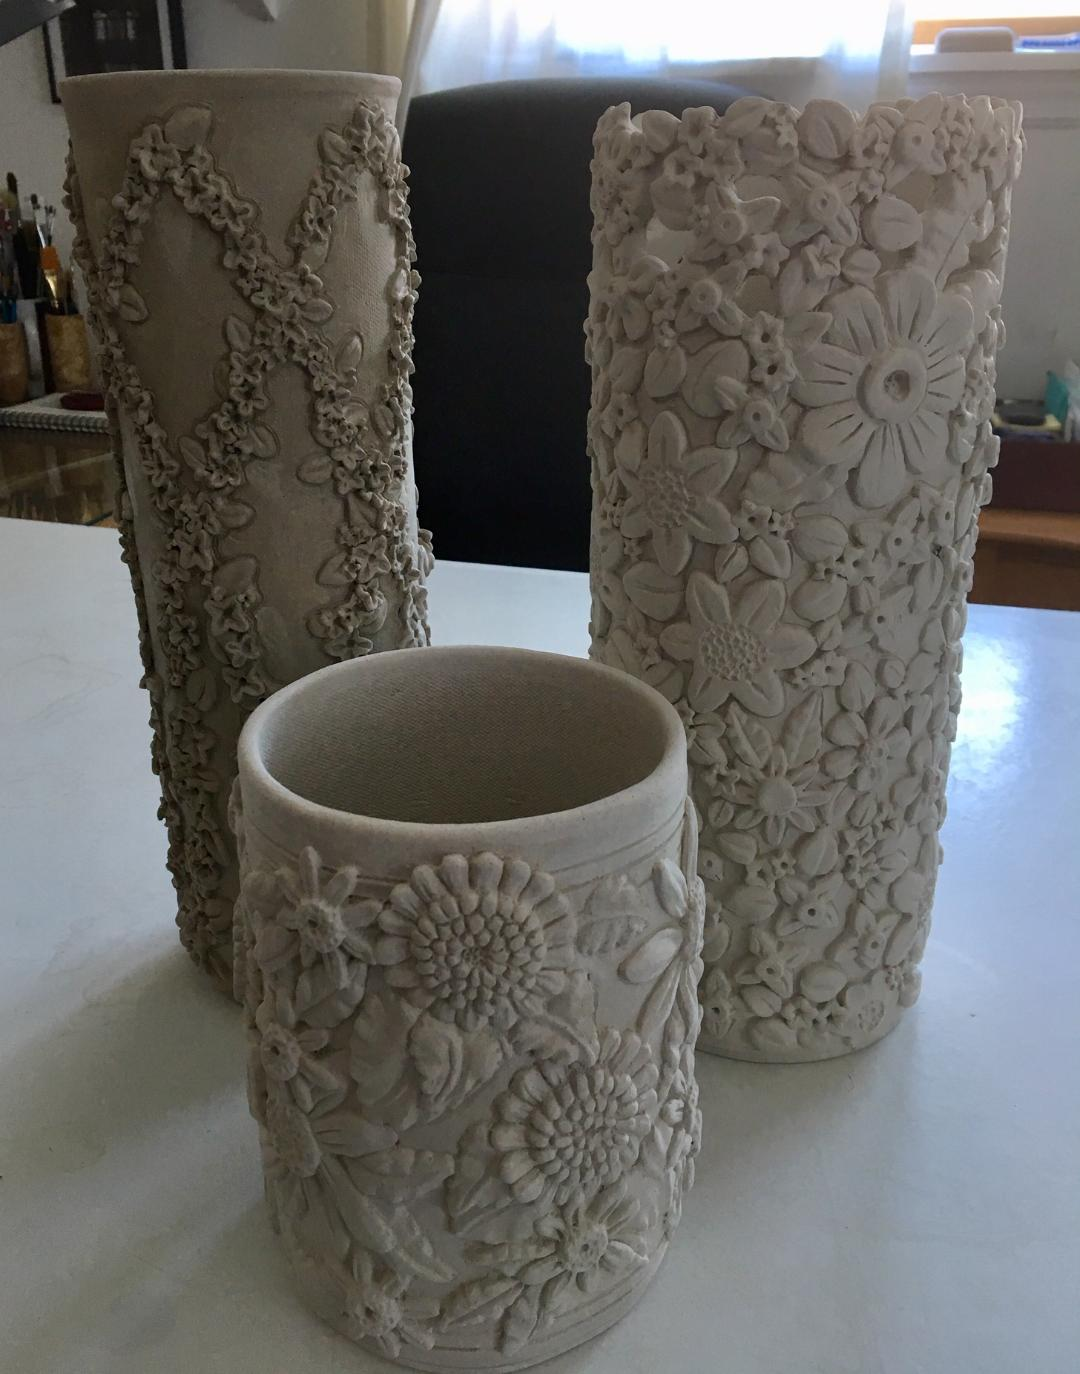 Here's the a quick photo of Sue's latest vases. They have to dry slowly for a week or so then they will be ready to be fired.